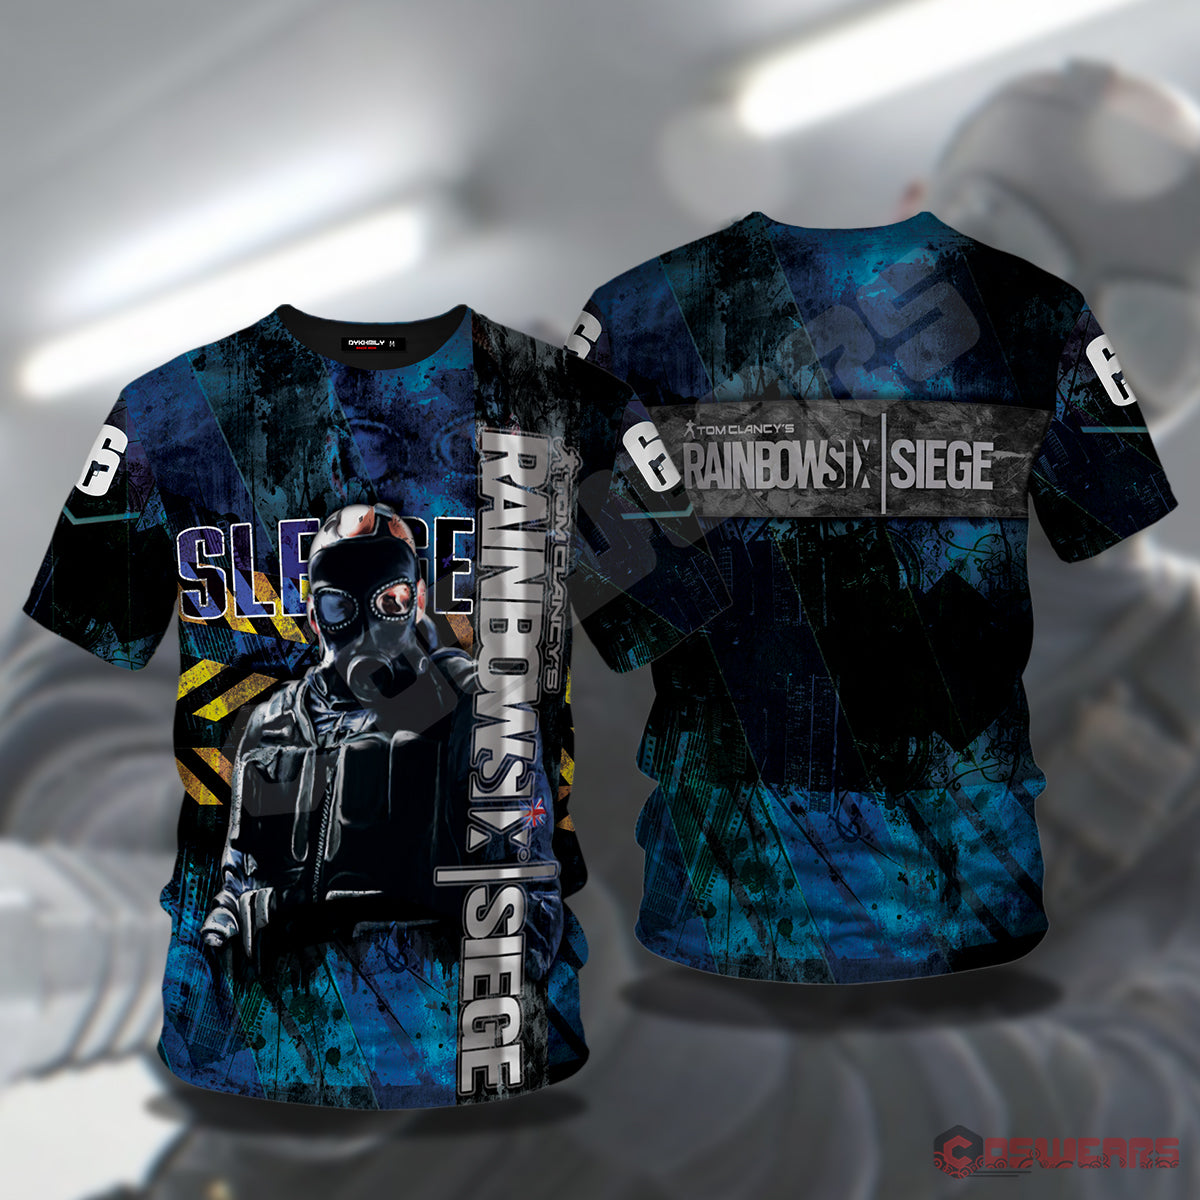 Rainbow 6 : Sledge Inspired T-Shirt